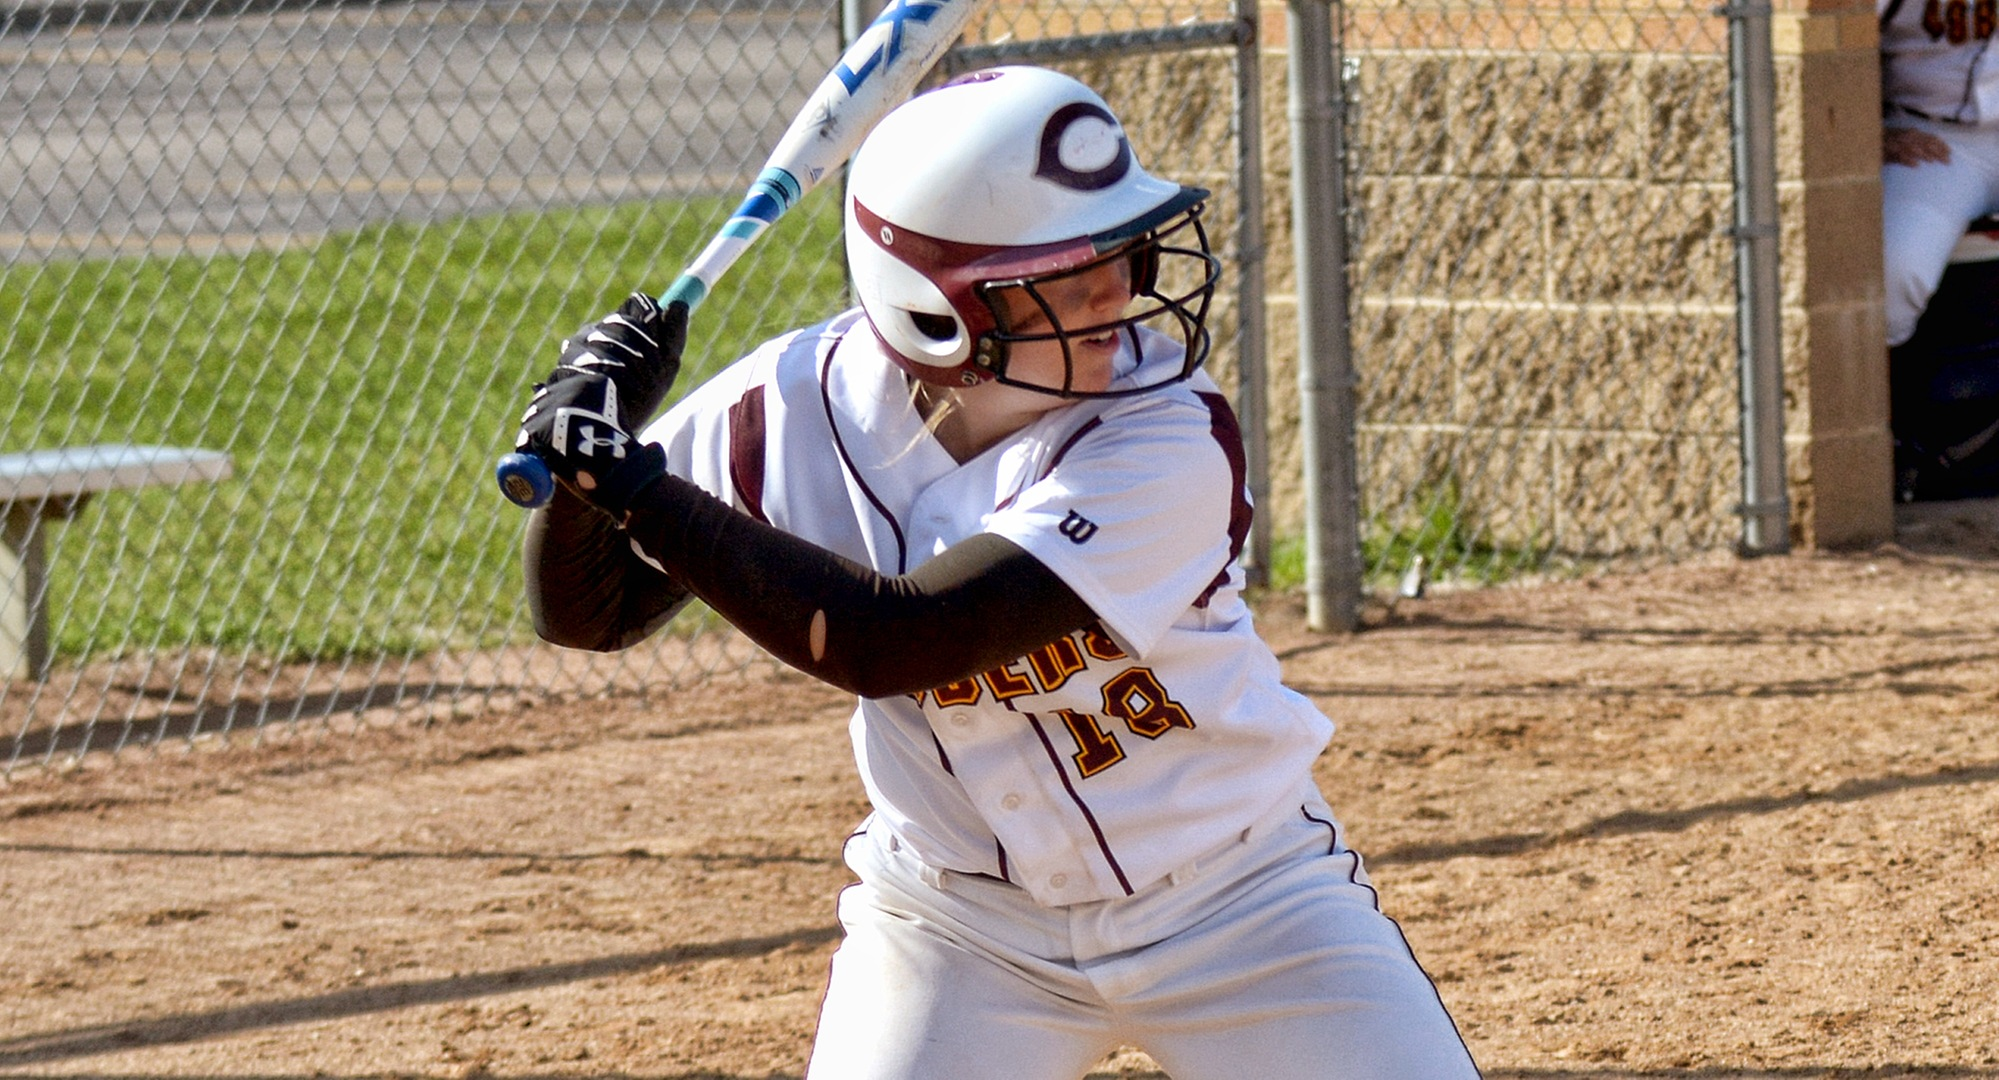 Senior Brooke Swarthout hit one of the three Cobber home runs in their two wins on the opening day of the season.